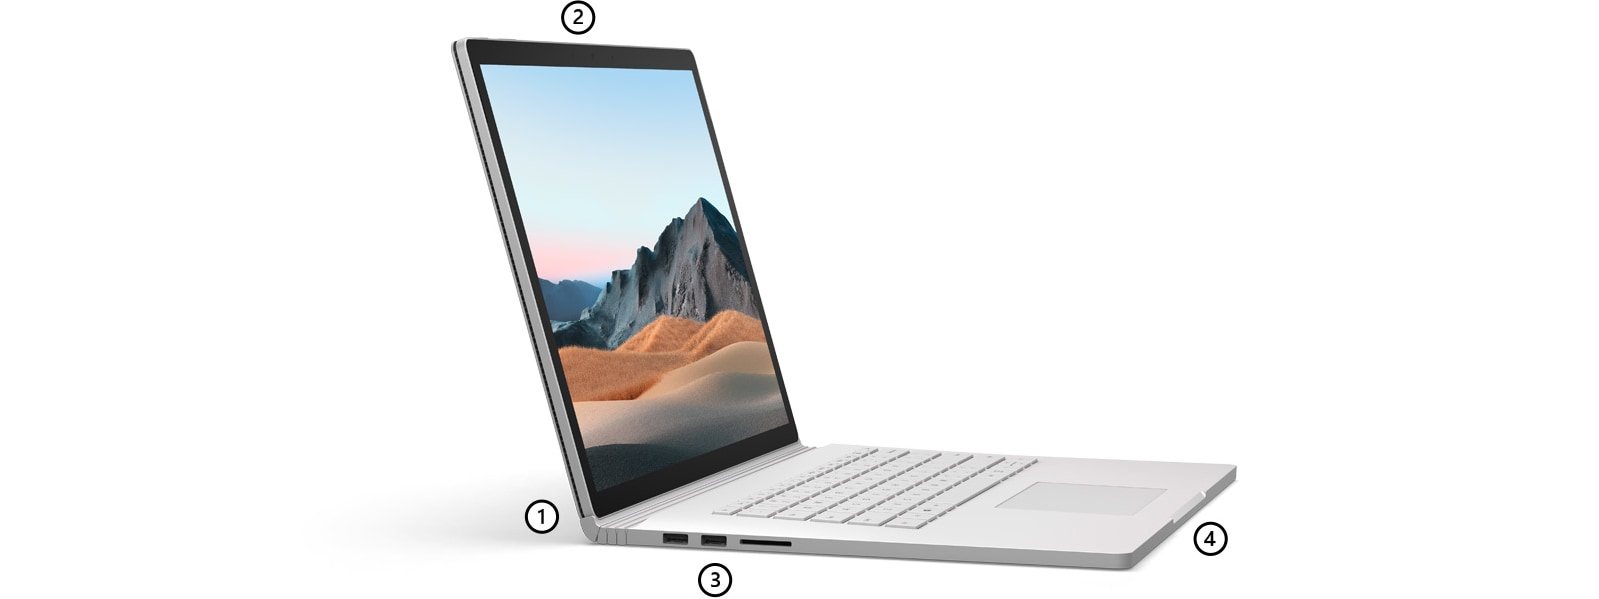 Surface Book 3 seen in profile with points highlighting the dynamic fulcrum hinge, microphones, ports and the keyboard